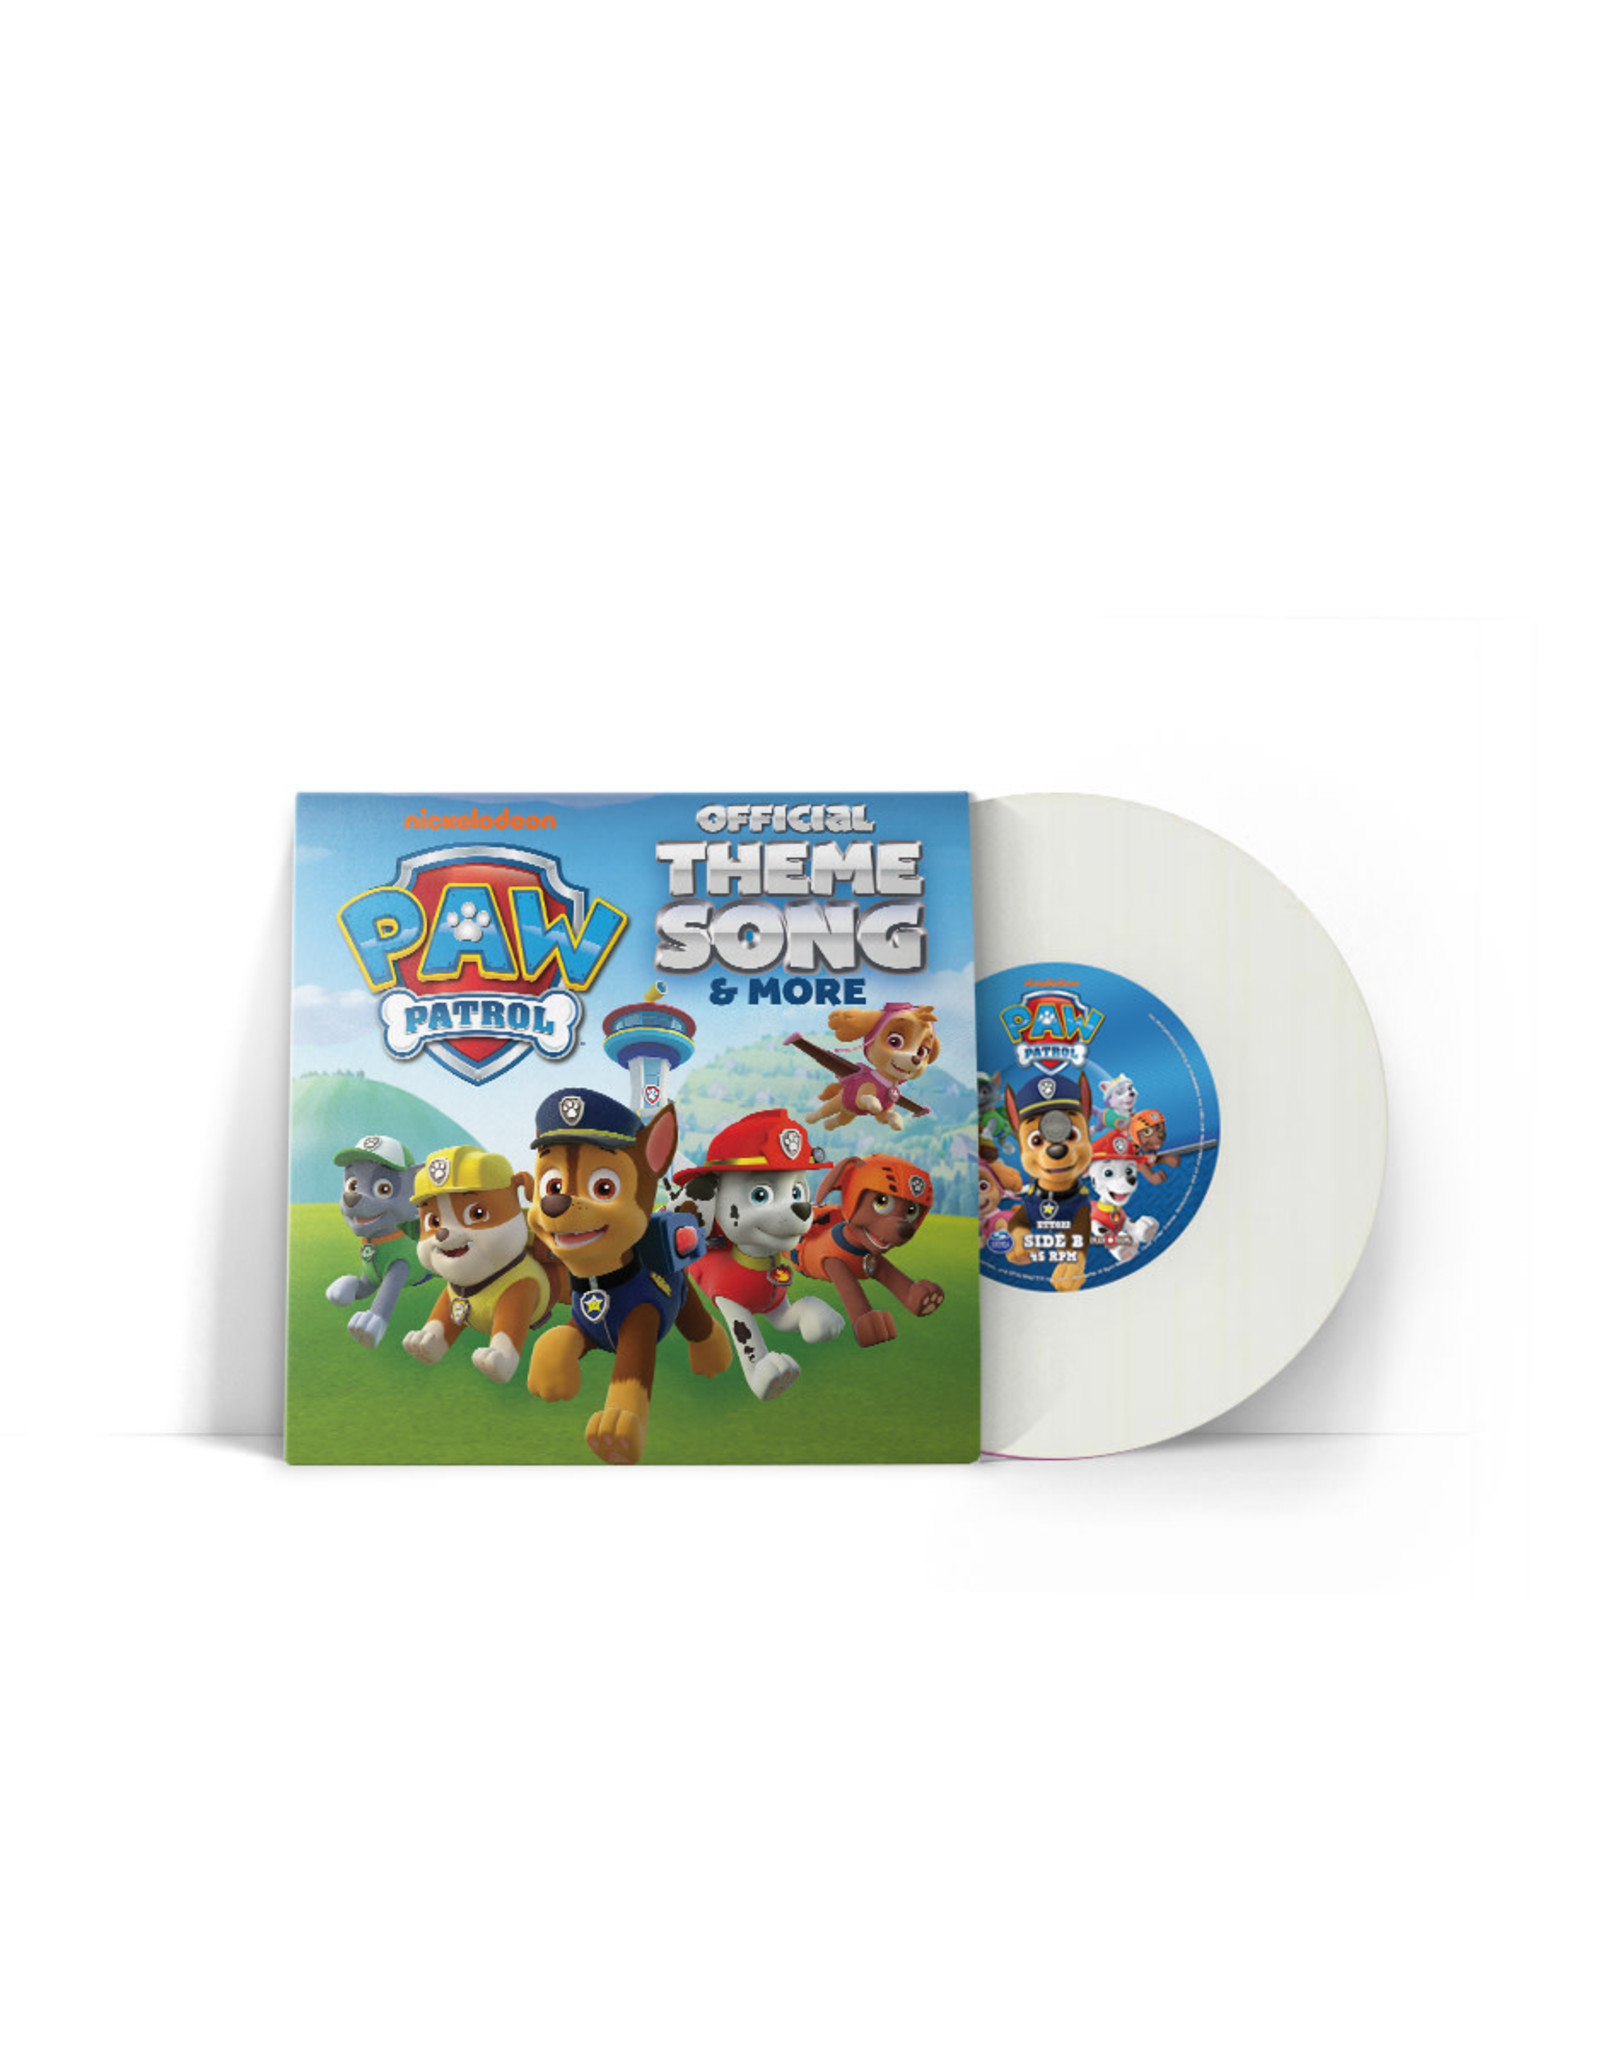 Paw Patrol - Official Theme Song & More 7""